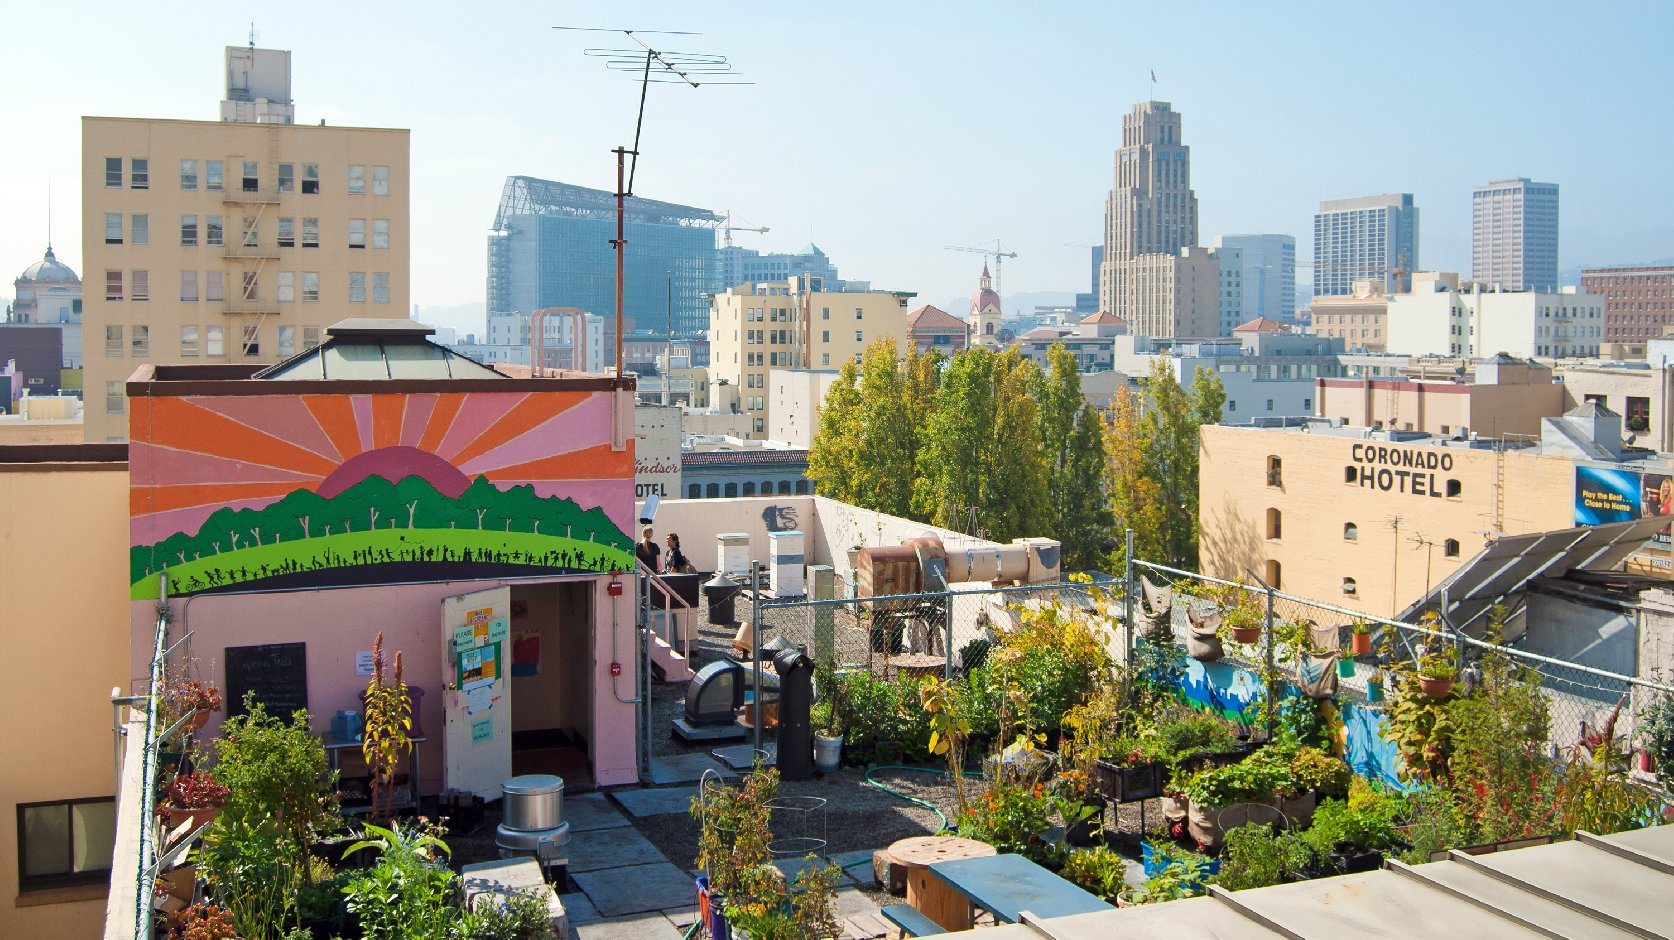 Graze the Roof is a community-produced garden that grows vegetables on the rooftop of a church in San Francisco. Photo: Sergio Ruiz. Flickr